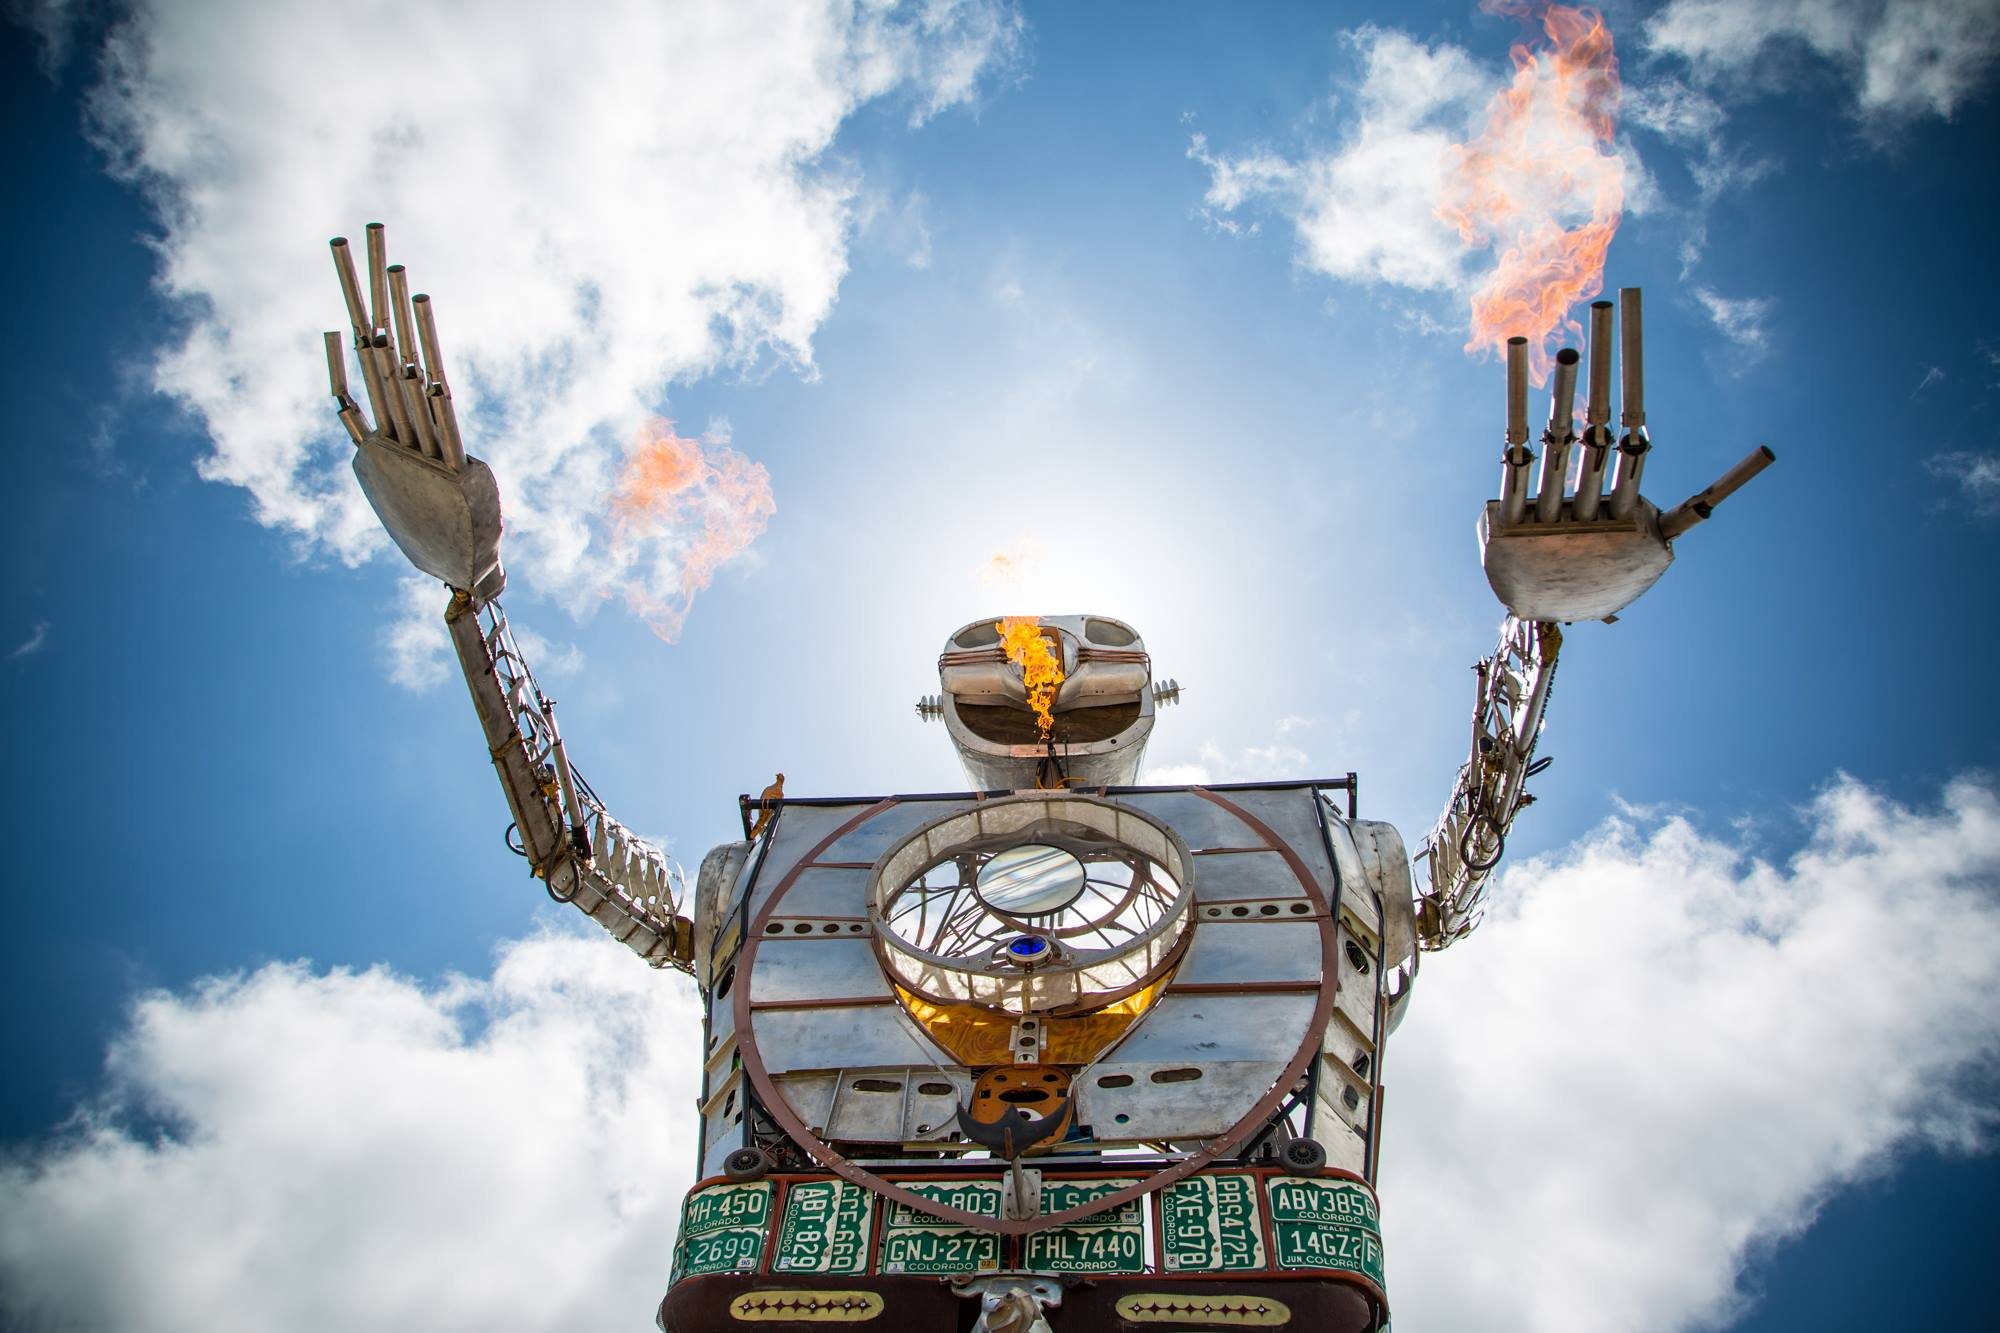 Bots, Flames, and Battleships Converge at Maker Faire San Diego